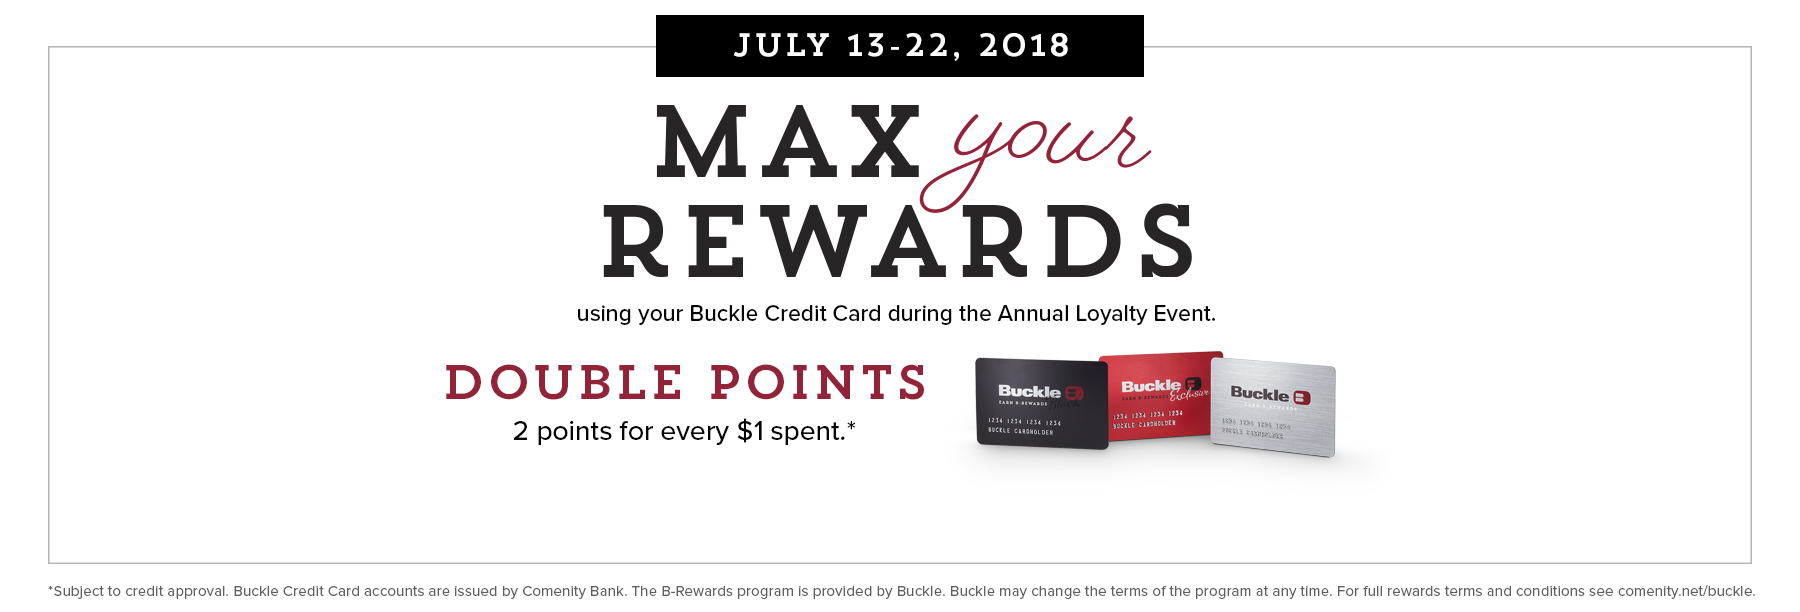 Max your rewards using your Buckle Credit Card during the Annual Loyalty Event. Double points, 2 points for every $1 spent.*